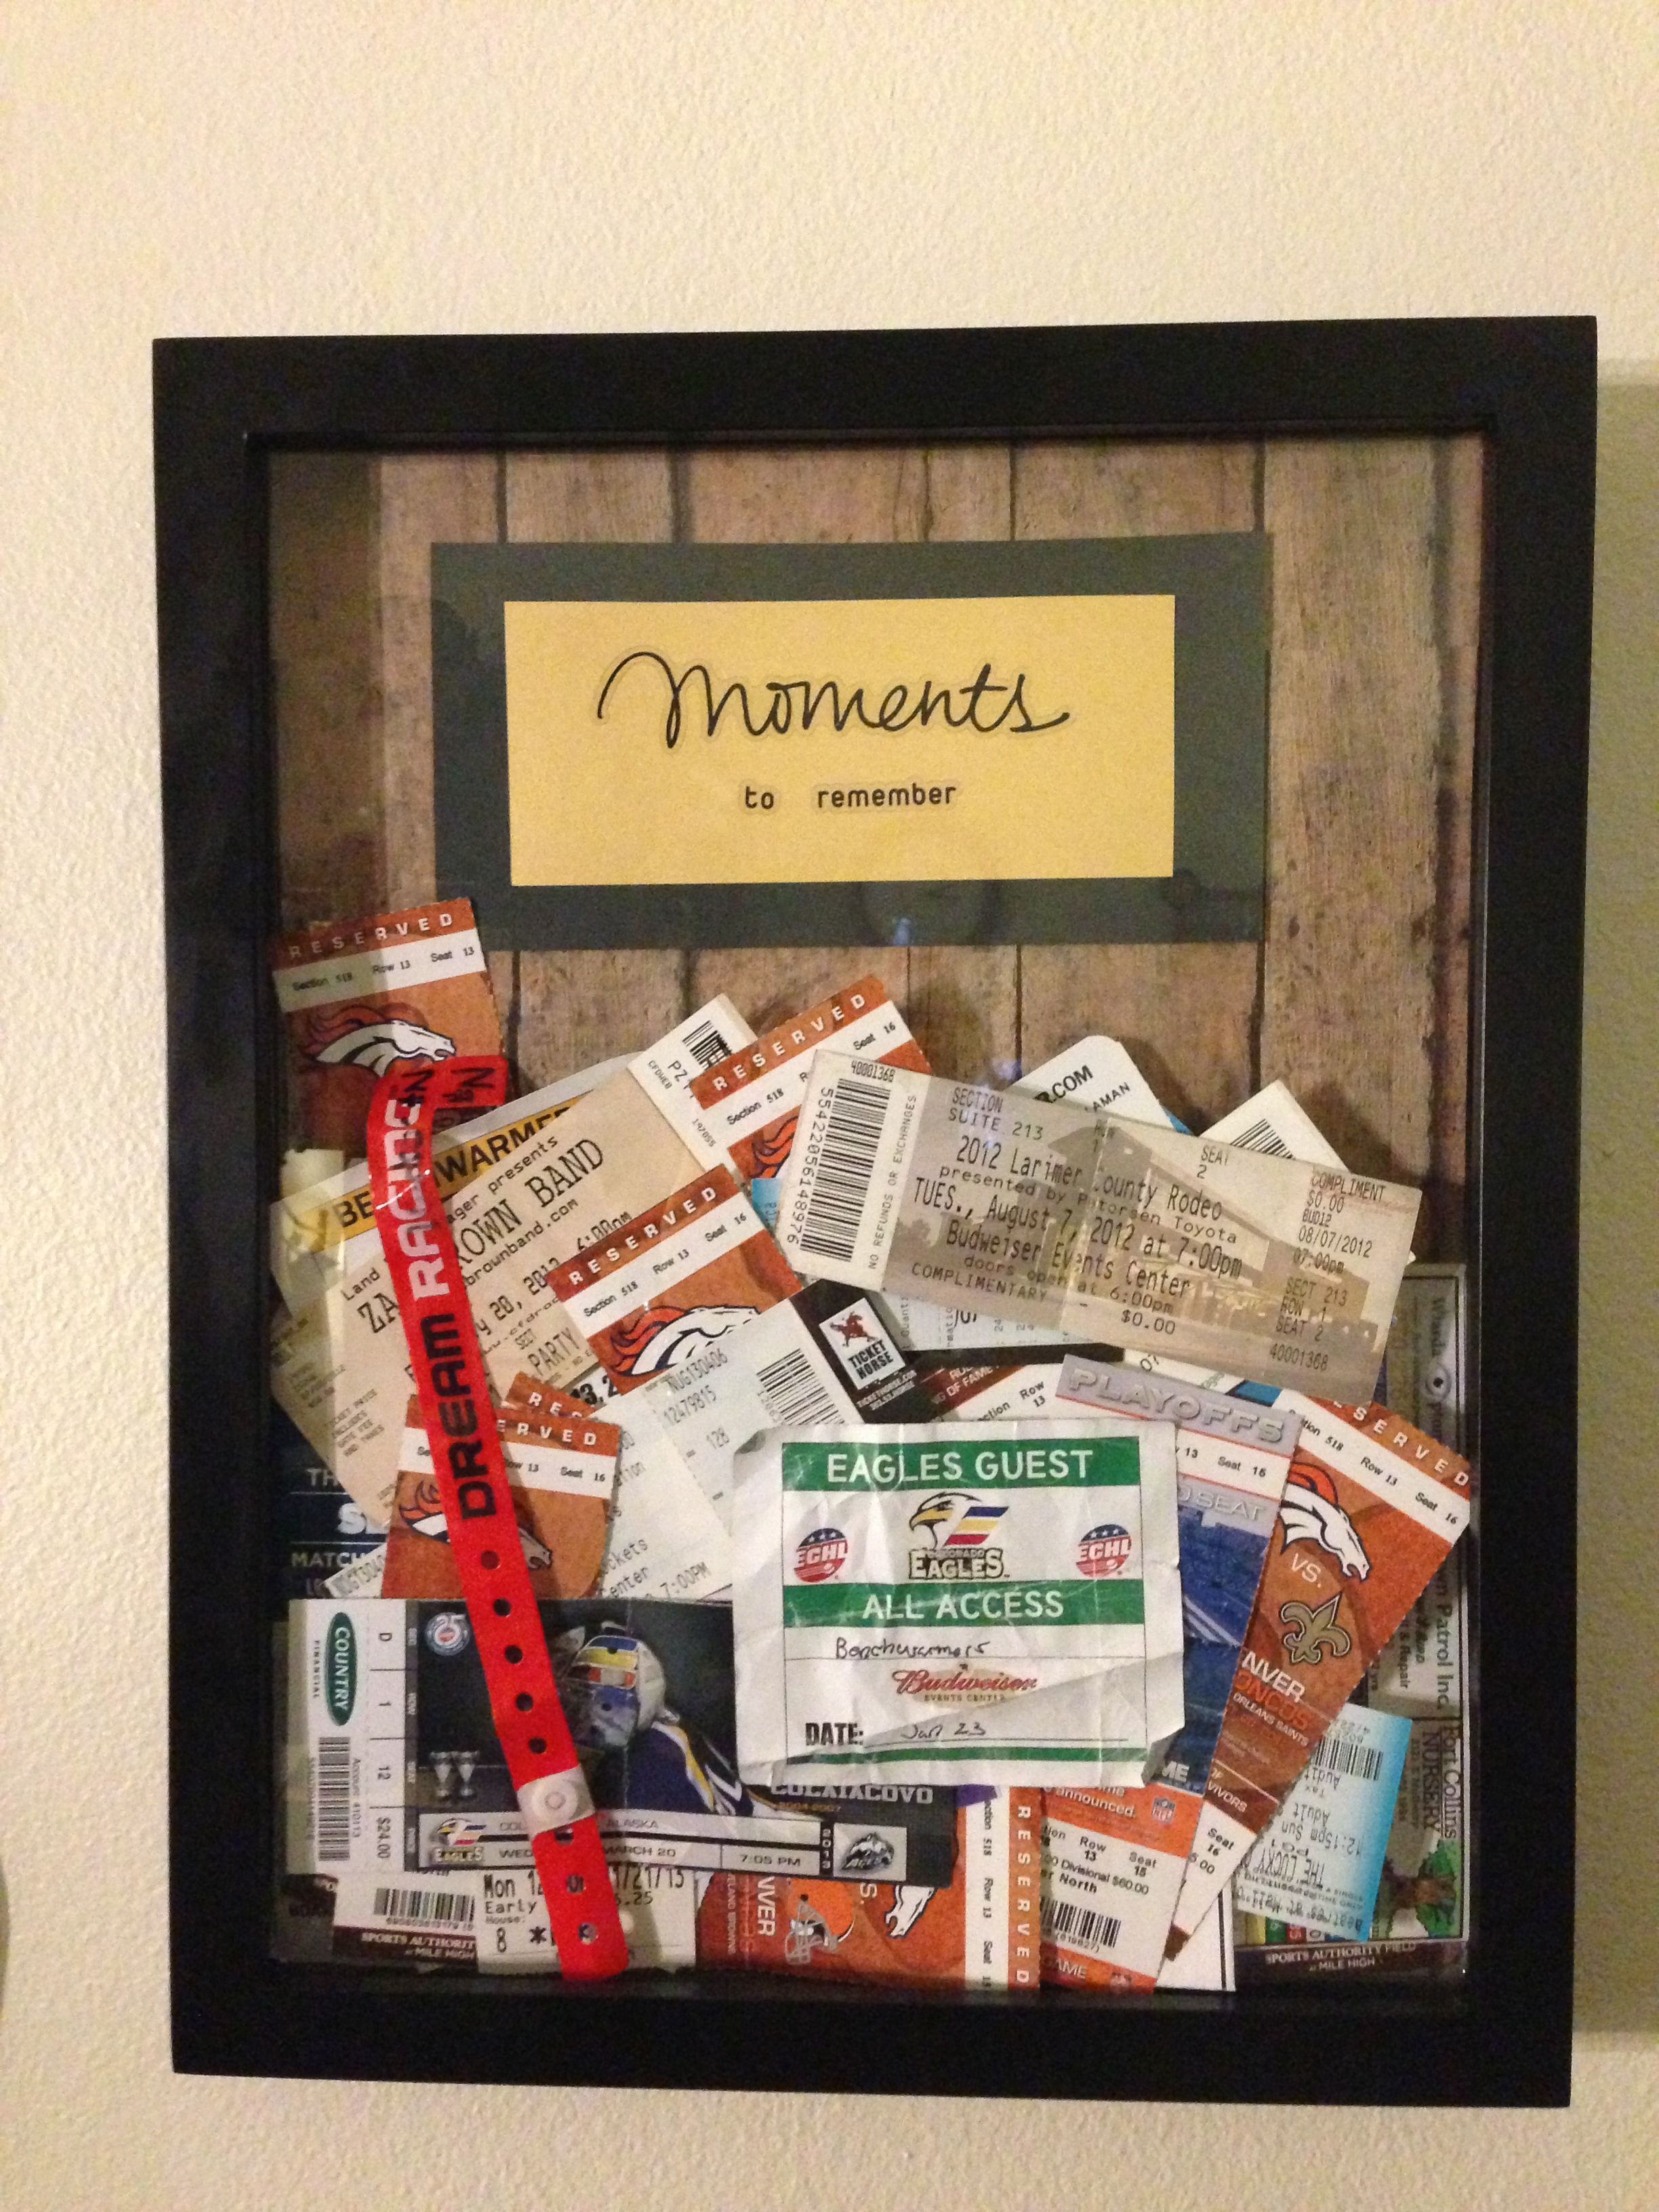 Scrapbook paper display - Display Shadow Box Frame W Slot Cut In Top To Add Ticket Stubs Glue Scrapbook Paper To Back Add Layered Title Sign